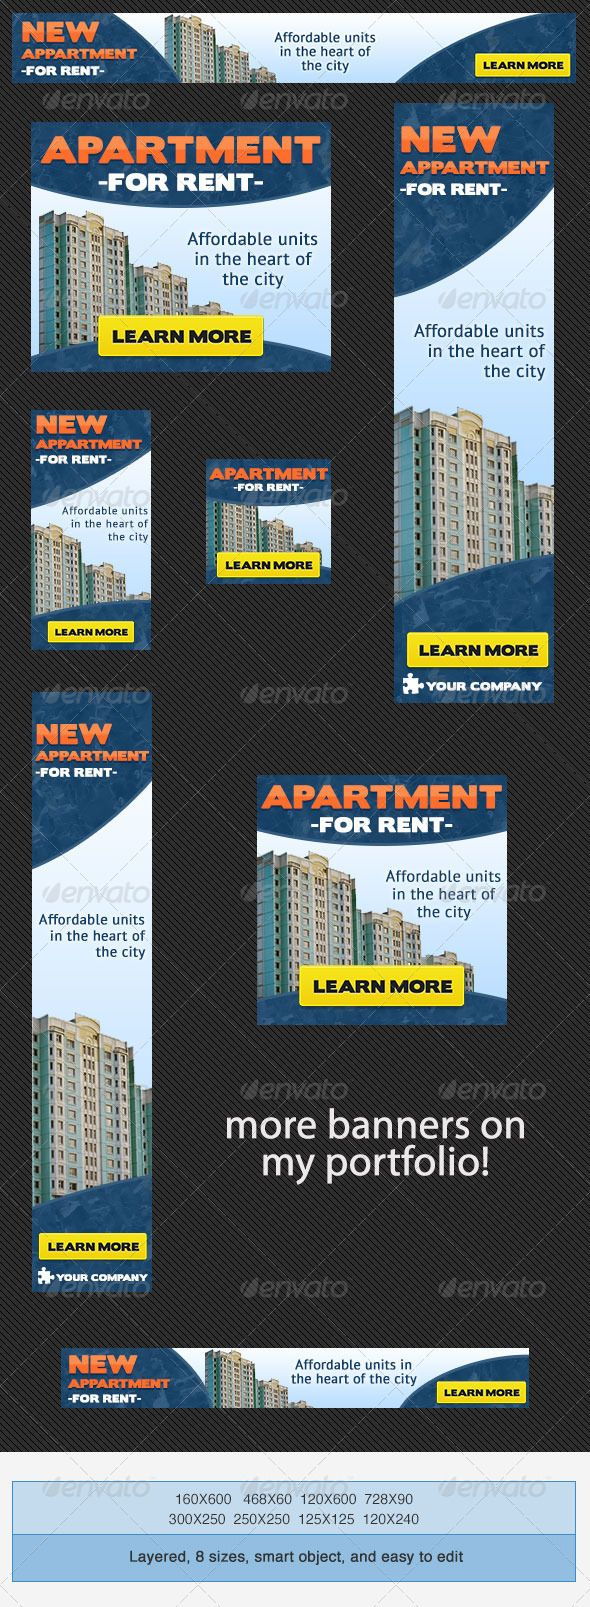 Real Estate Apartment Banner Ad | Web advertisement and Banners